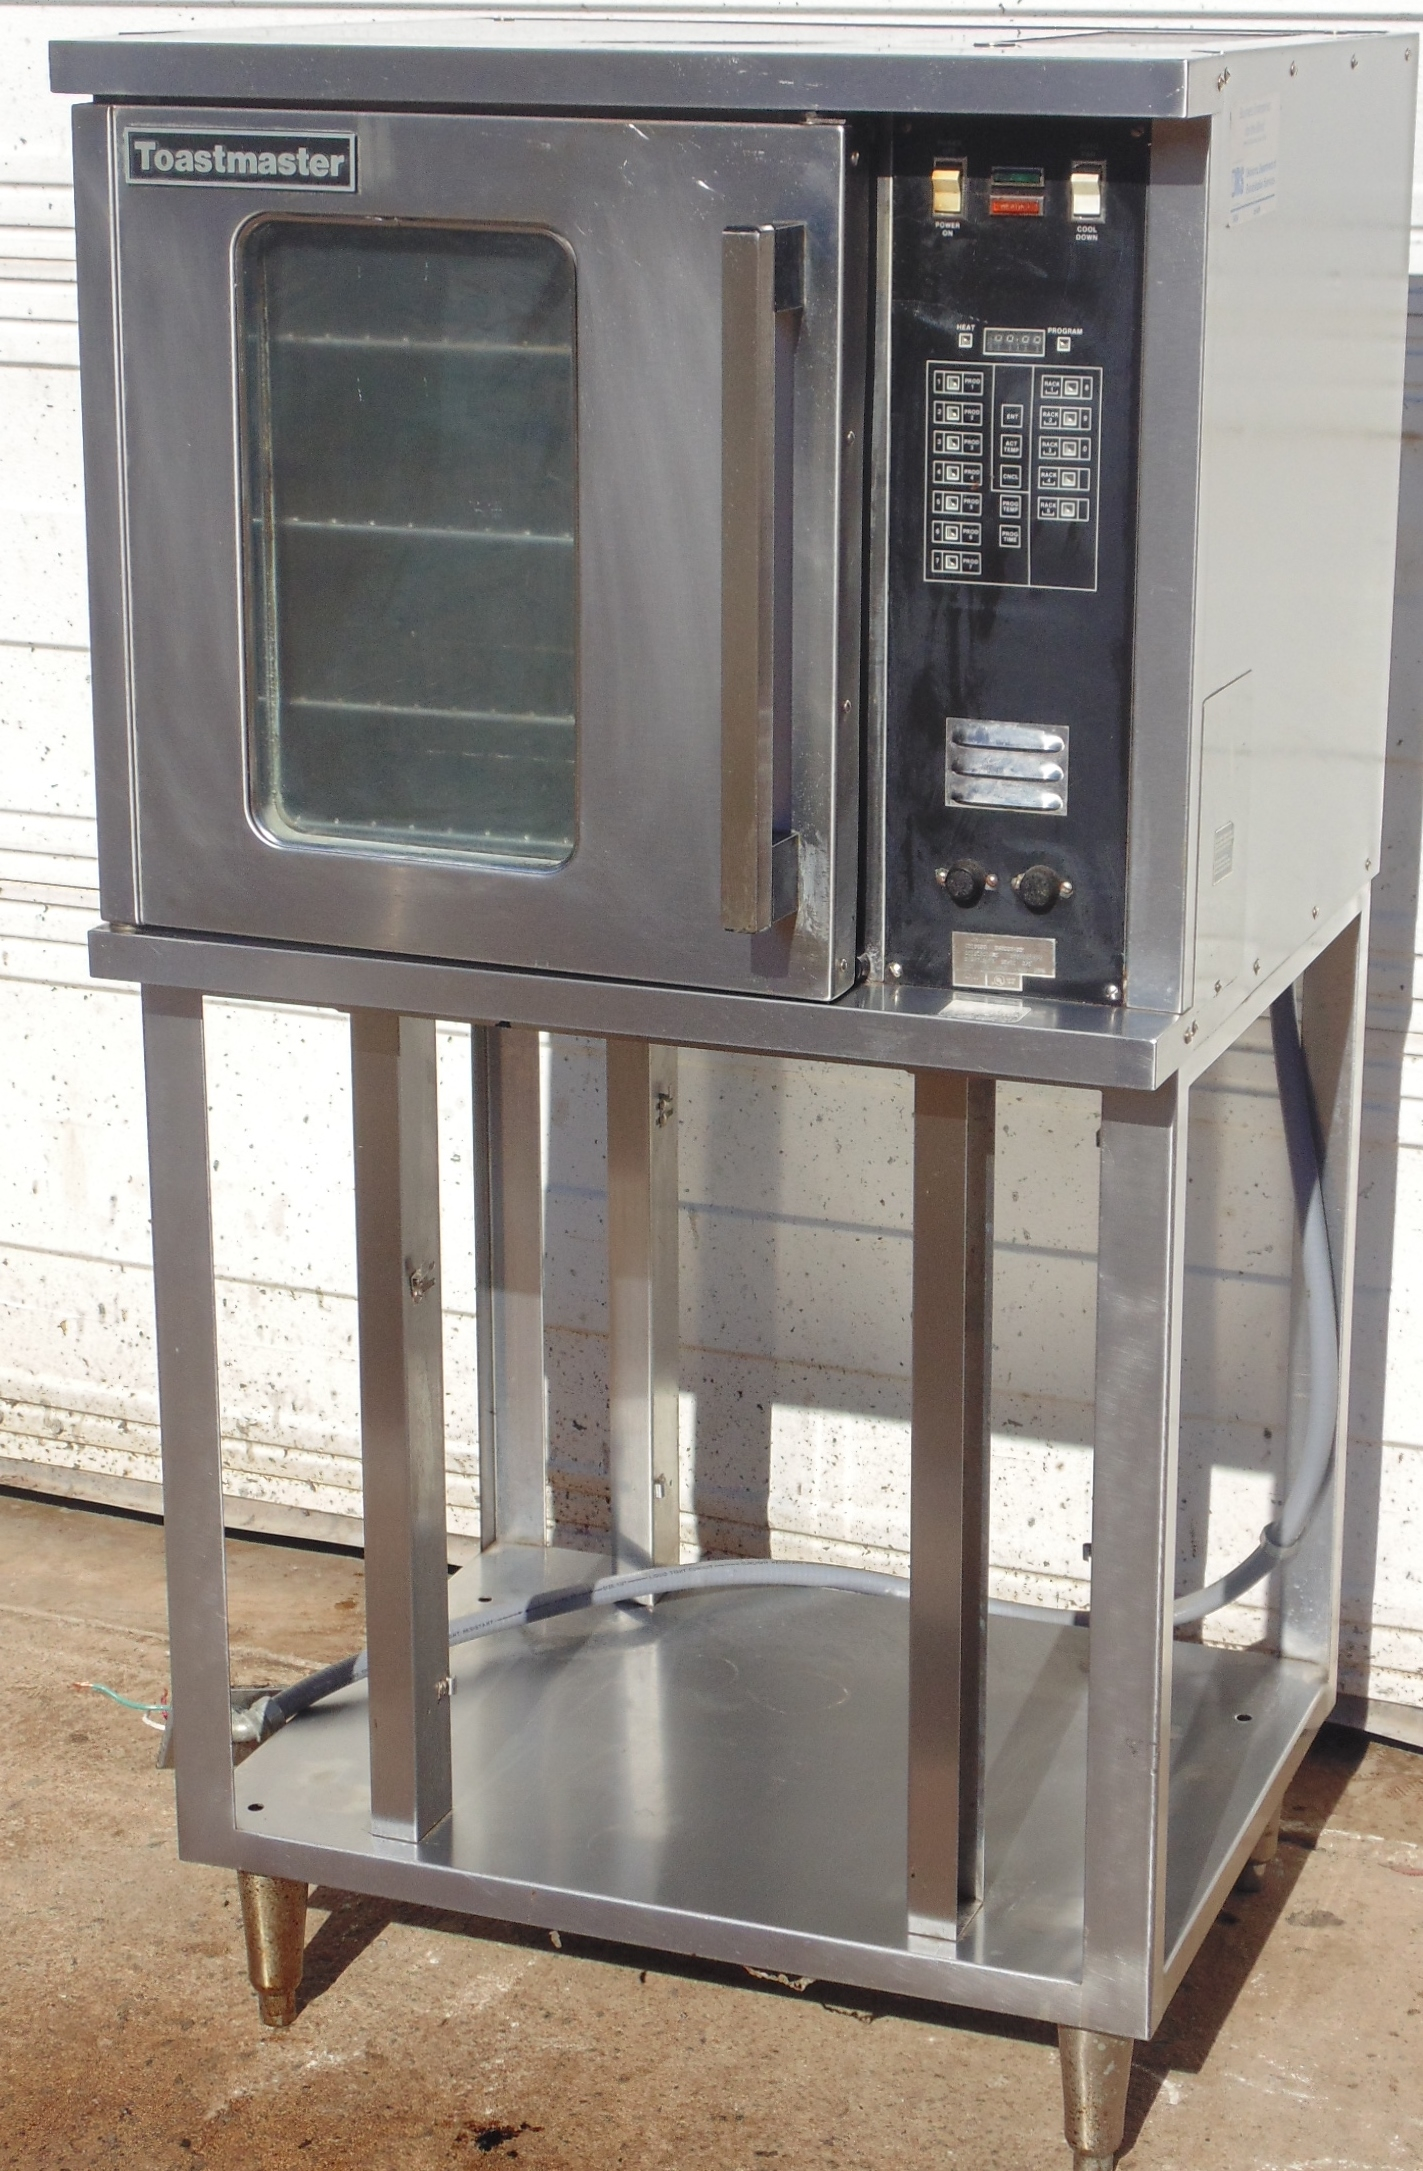 Used commercial kitchen equipment - We Are Selling Used Commercial Restaurant Equipment Since We Stock Over 100s Good Used Reliable Restaurant Equipment On Stock We Carry Pizza